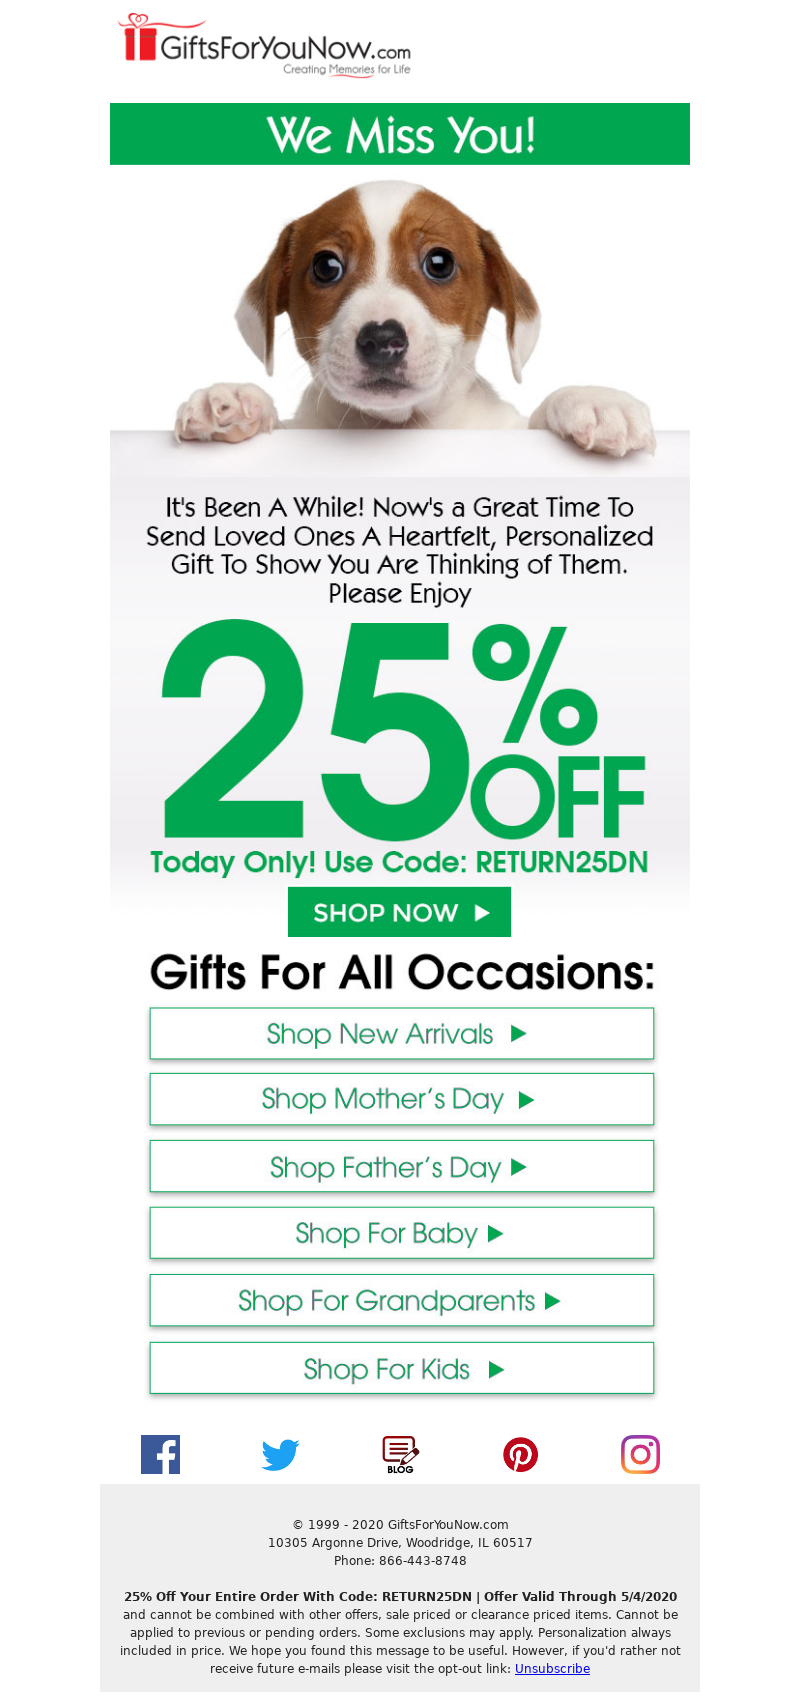 GiftsForYouNow.com - It's Been Too Long | 25% Off Your Entire Order